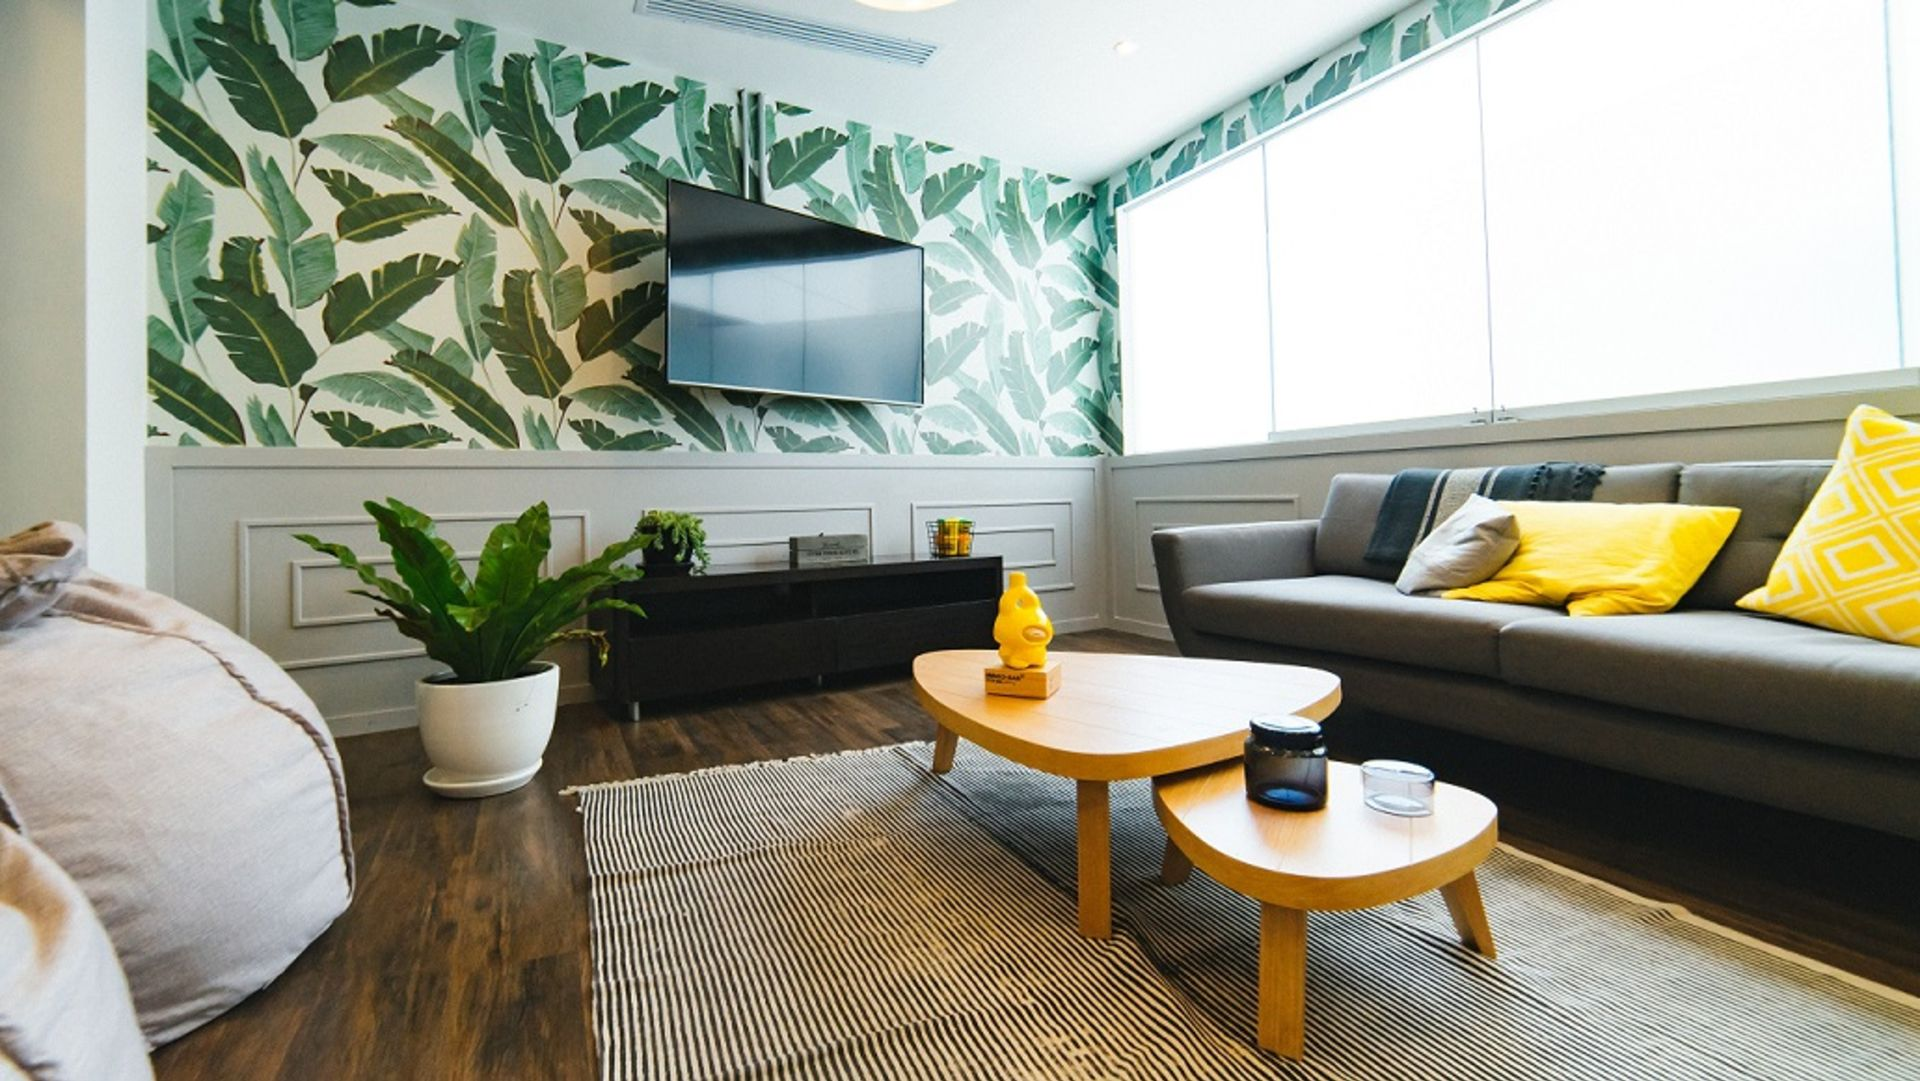 3 Ways to Turn Your Boring Rental into a Charming Oasis